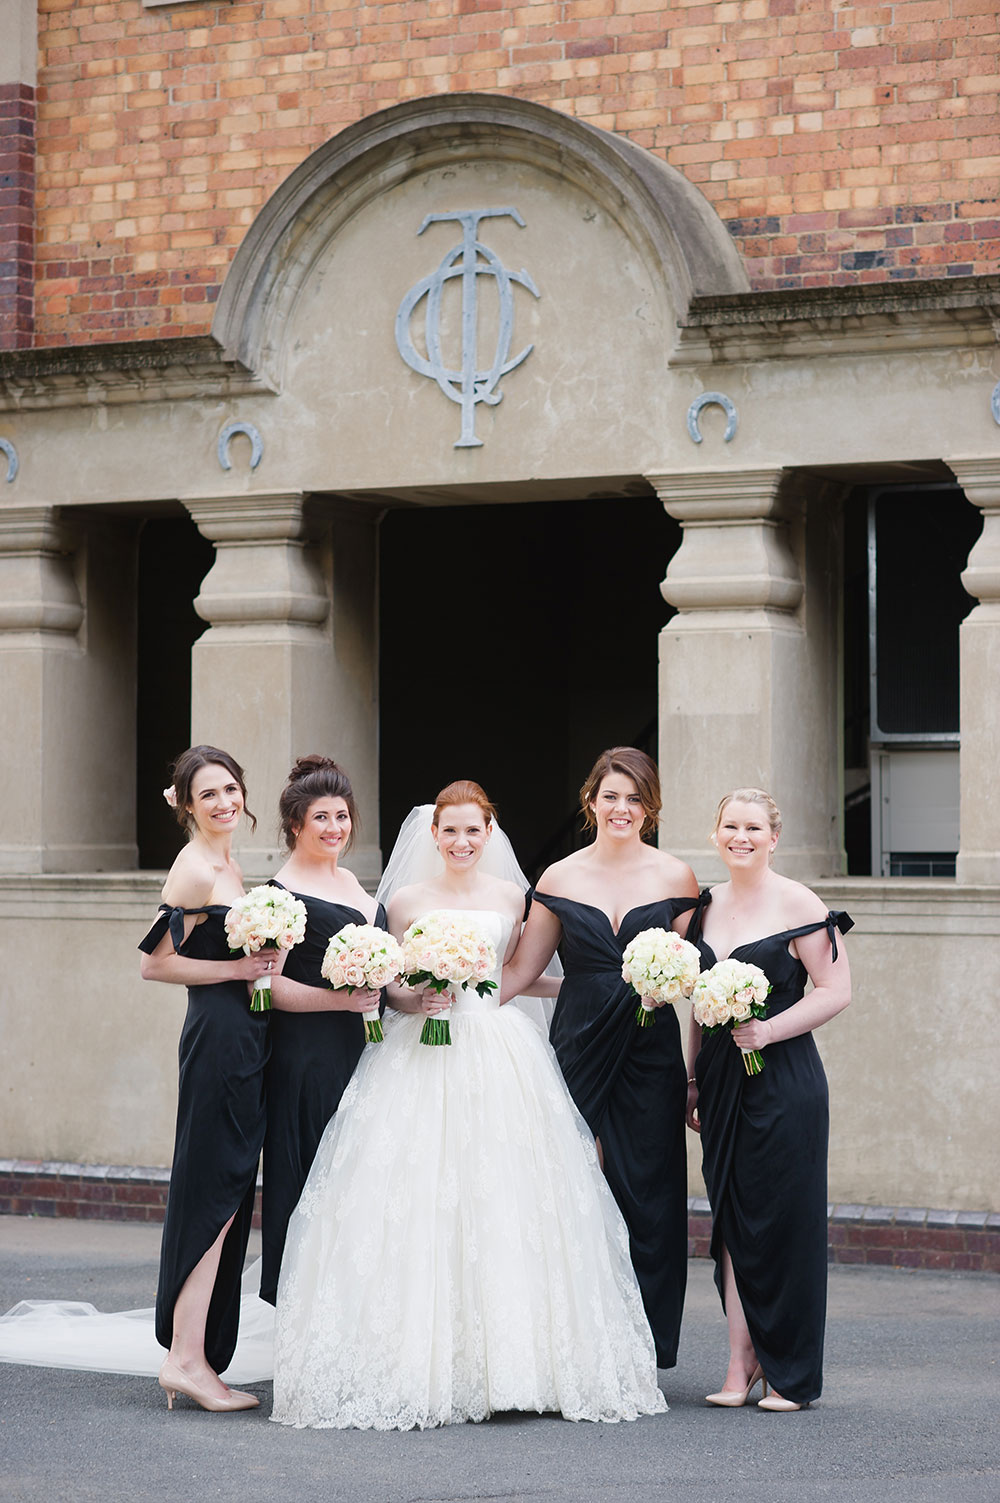 Annabel and her bridesmaids